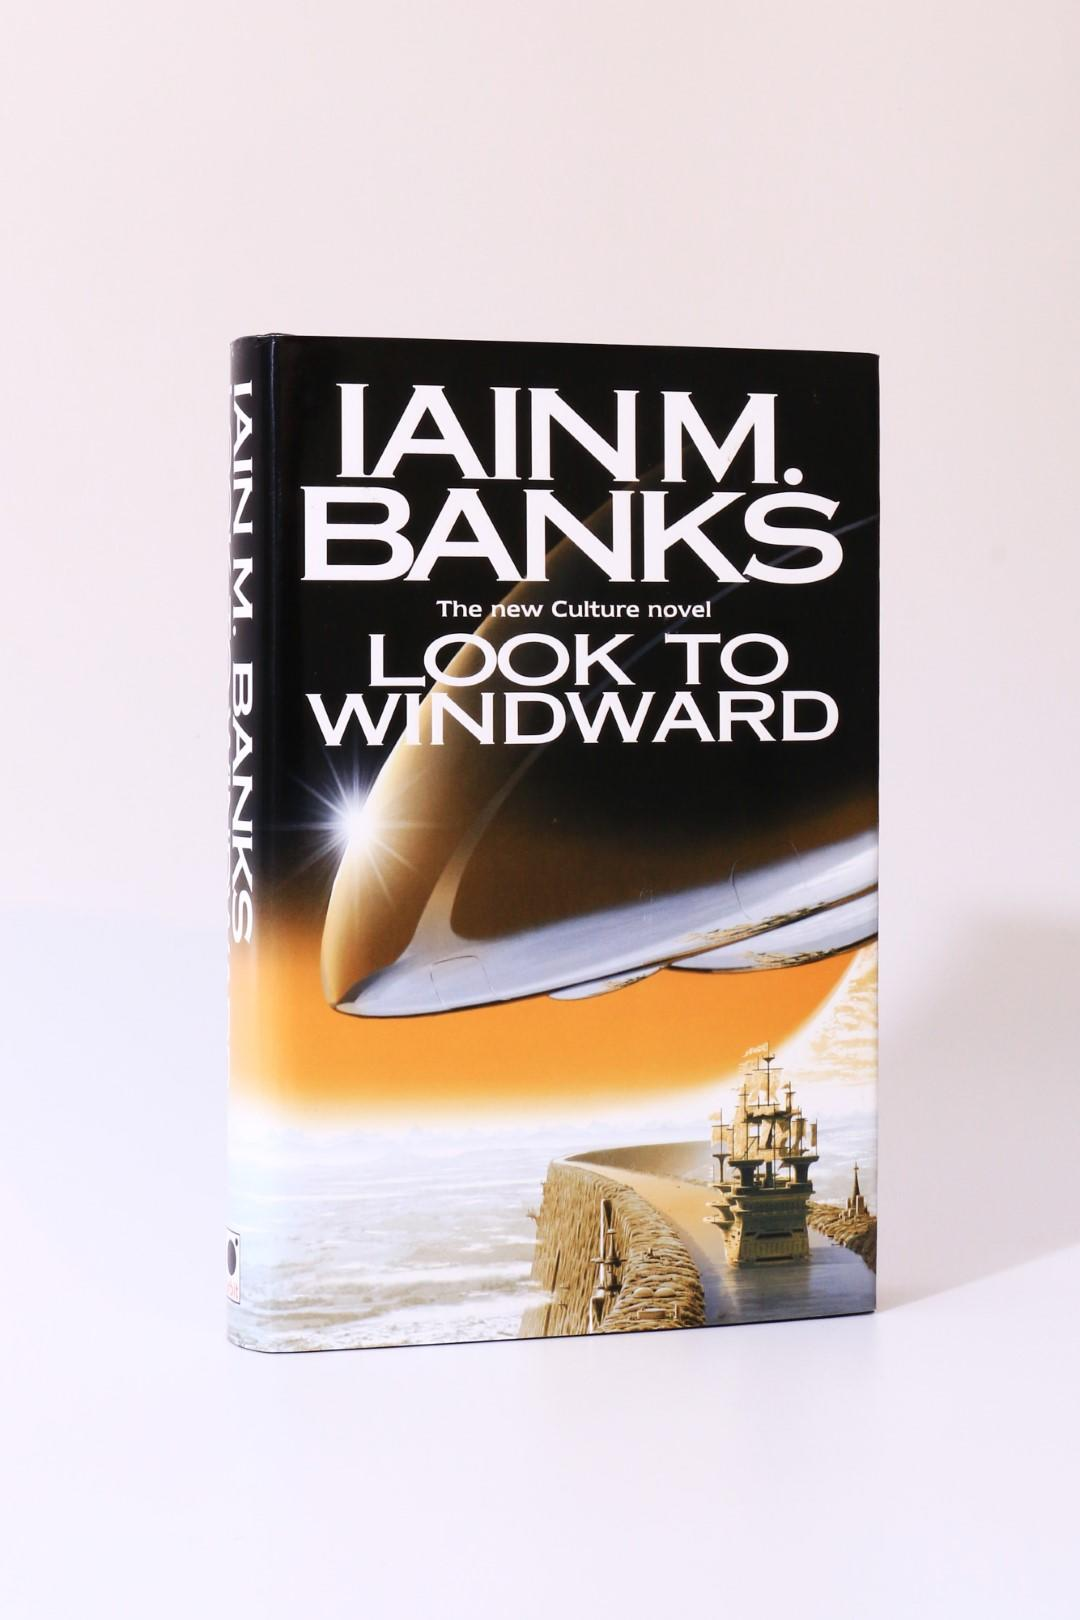 Iain M. Banks - Look to Windward - Orbit, 2000, Signed First Edition.